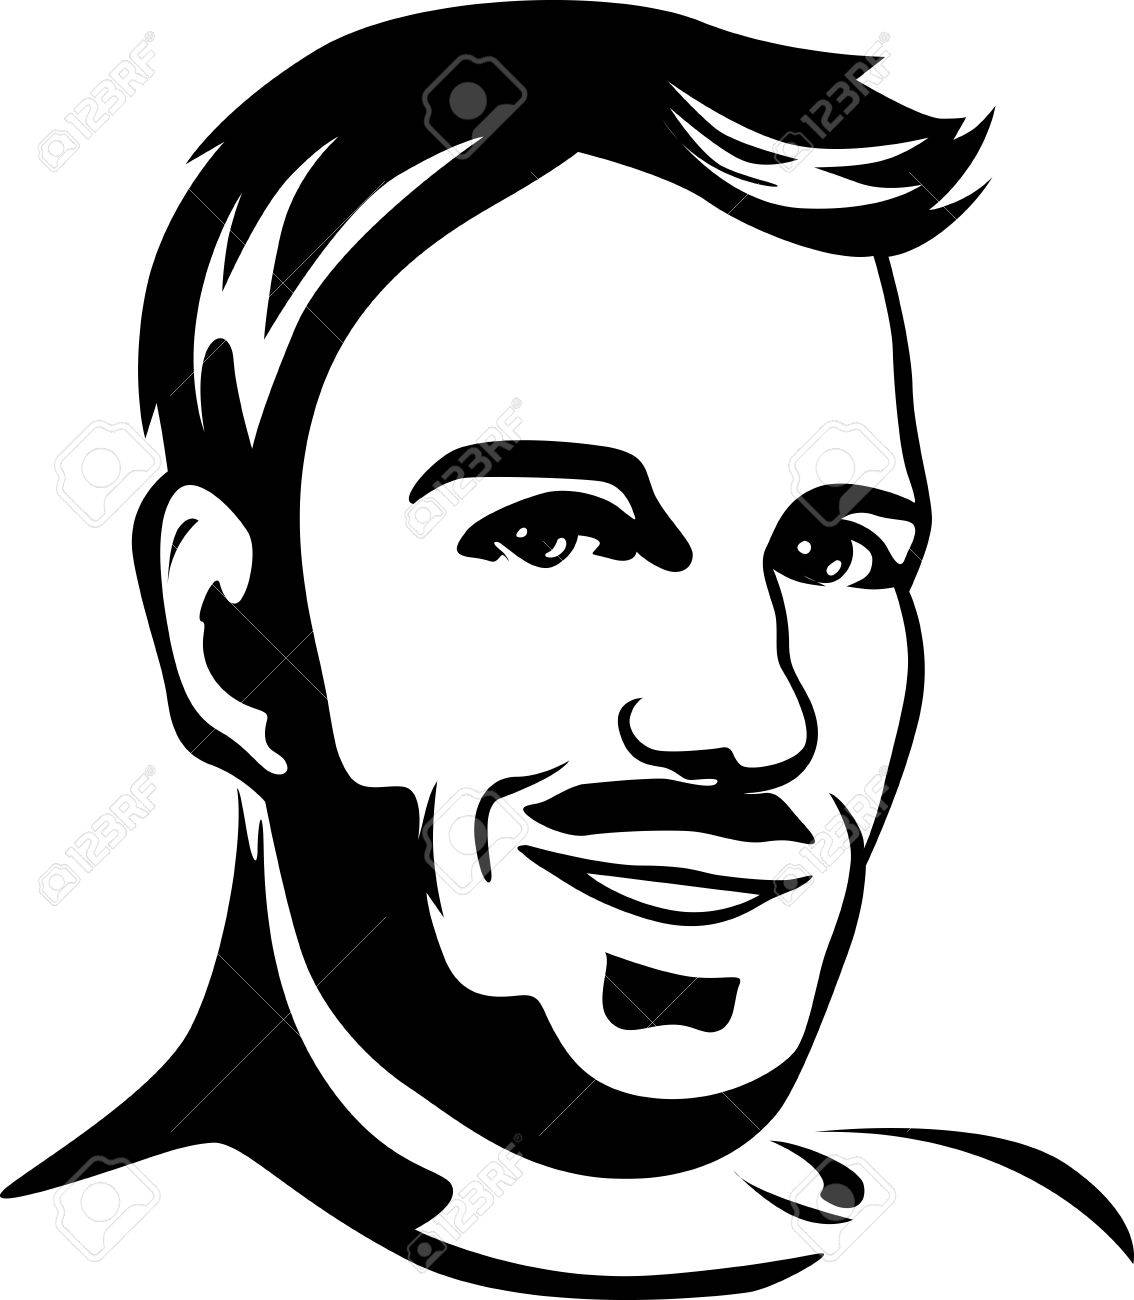 Man Black And White Clipart.